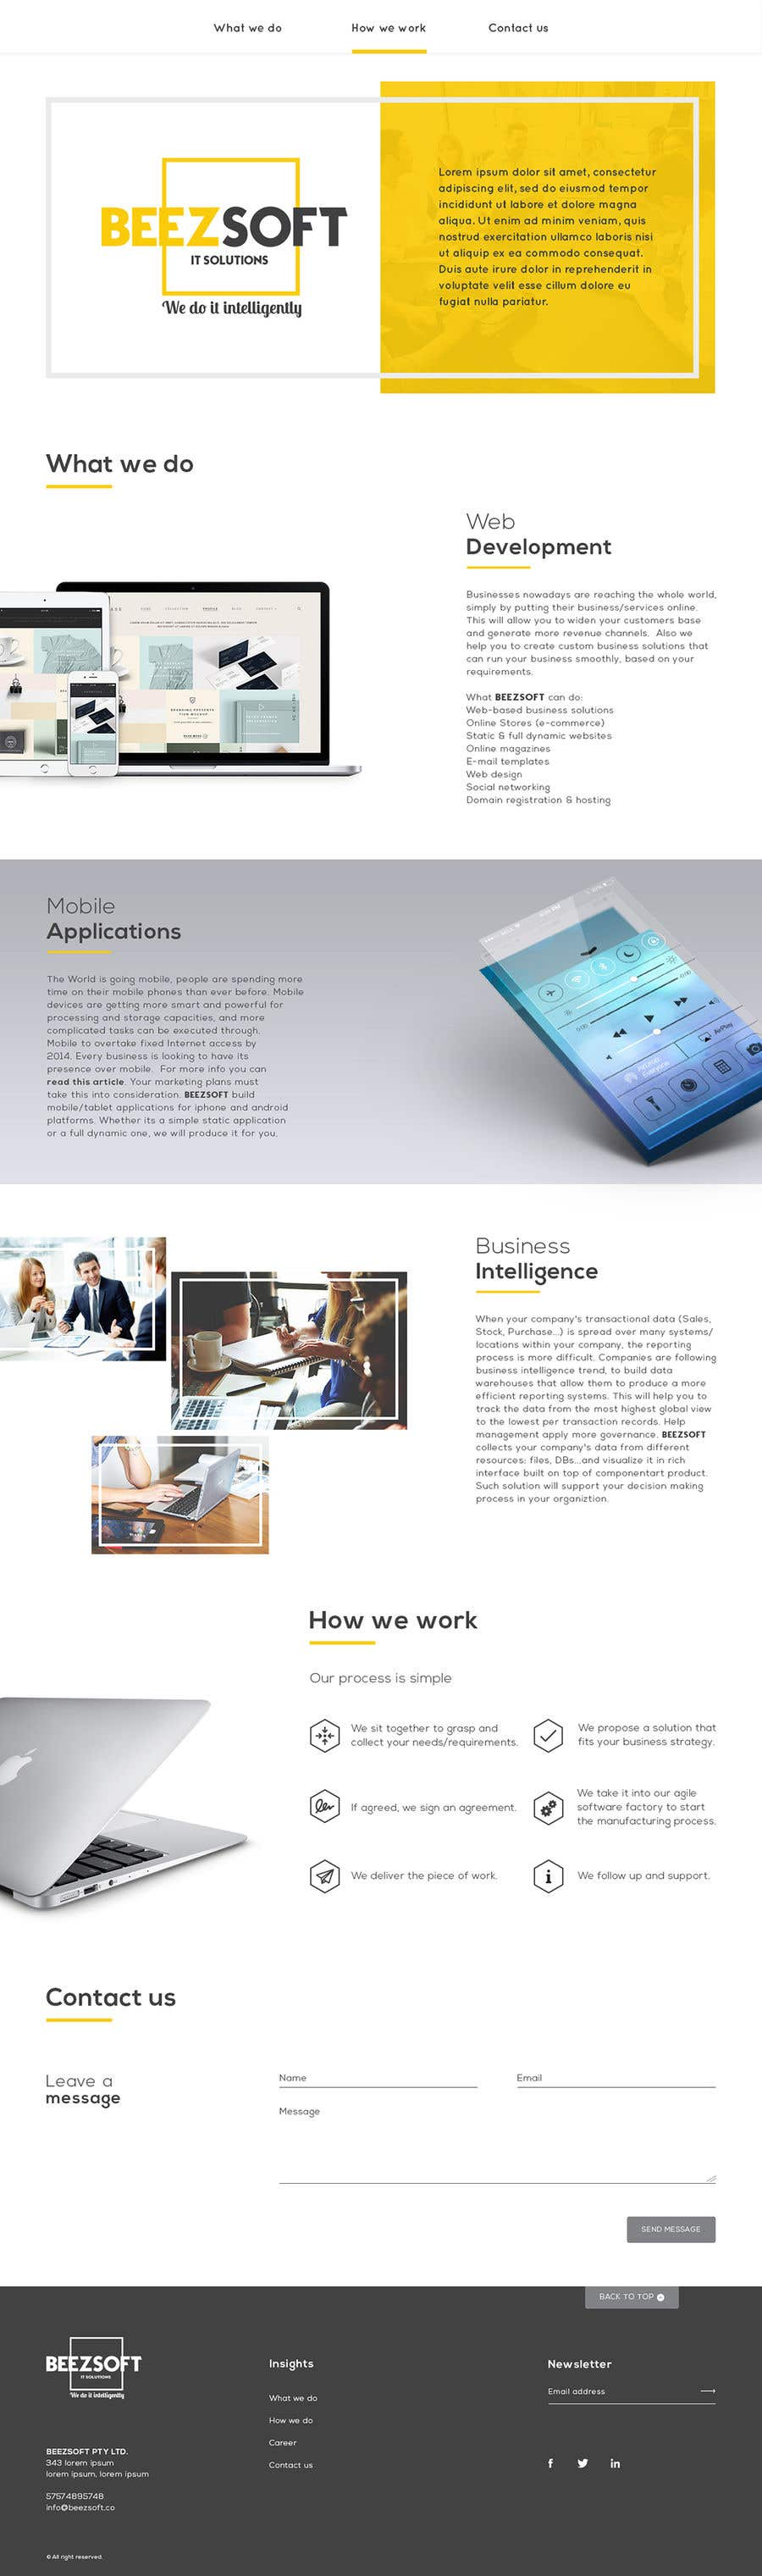 Bài tham dự cuộc thi #59 cho Design and build 1 page static introduction website